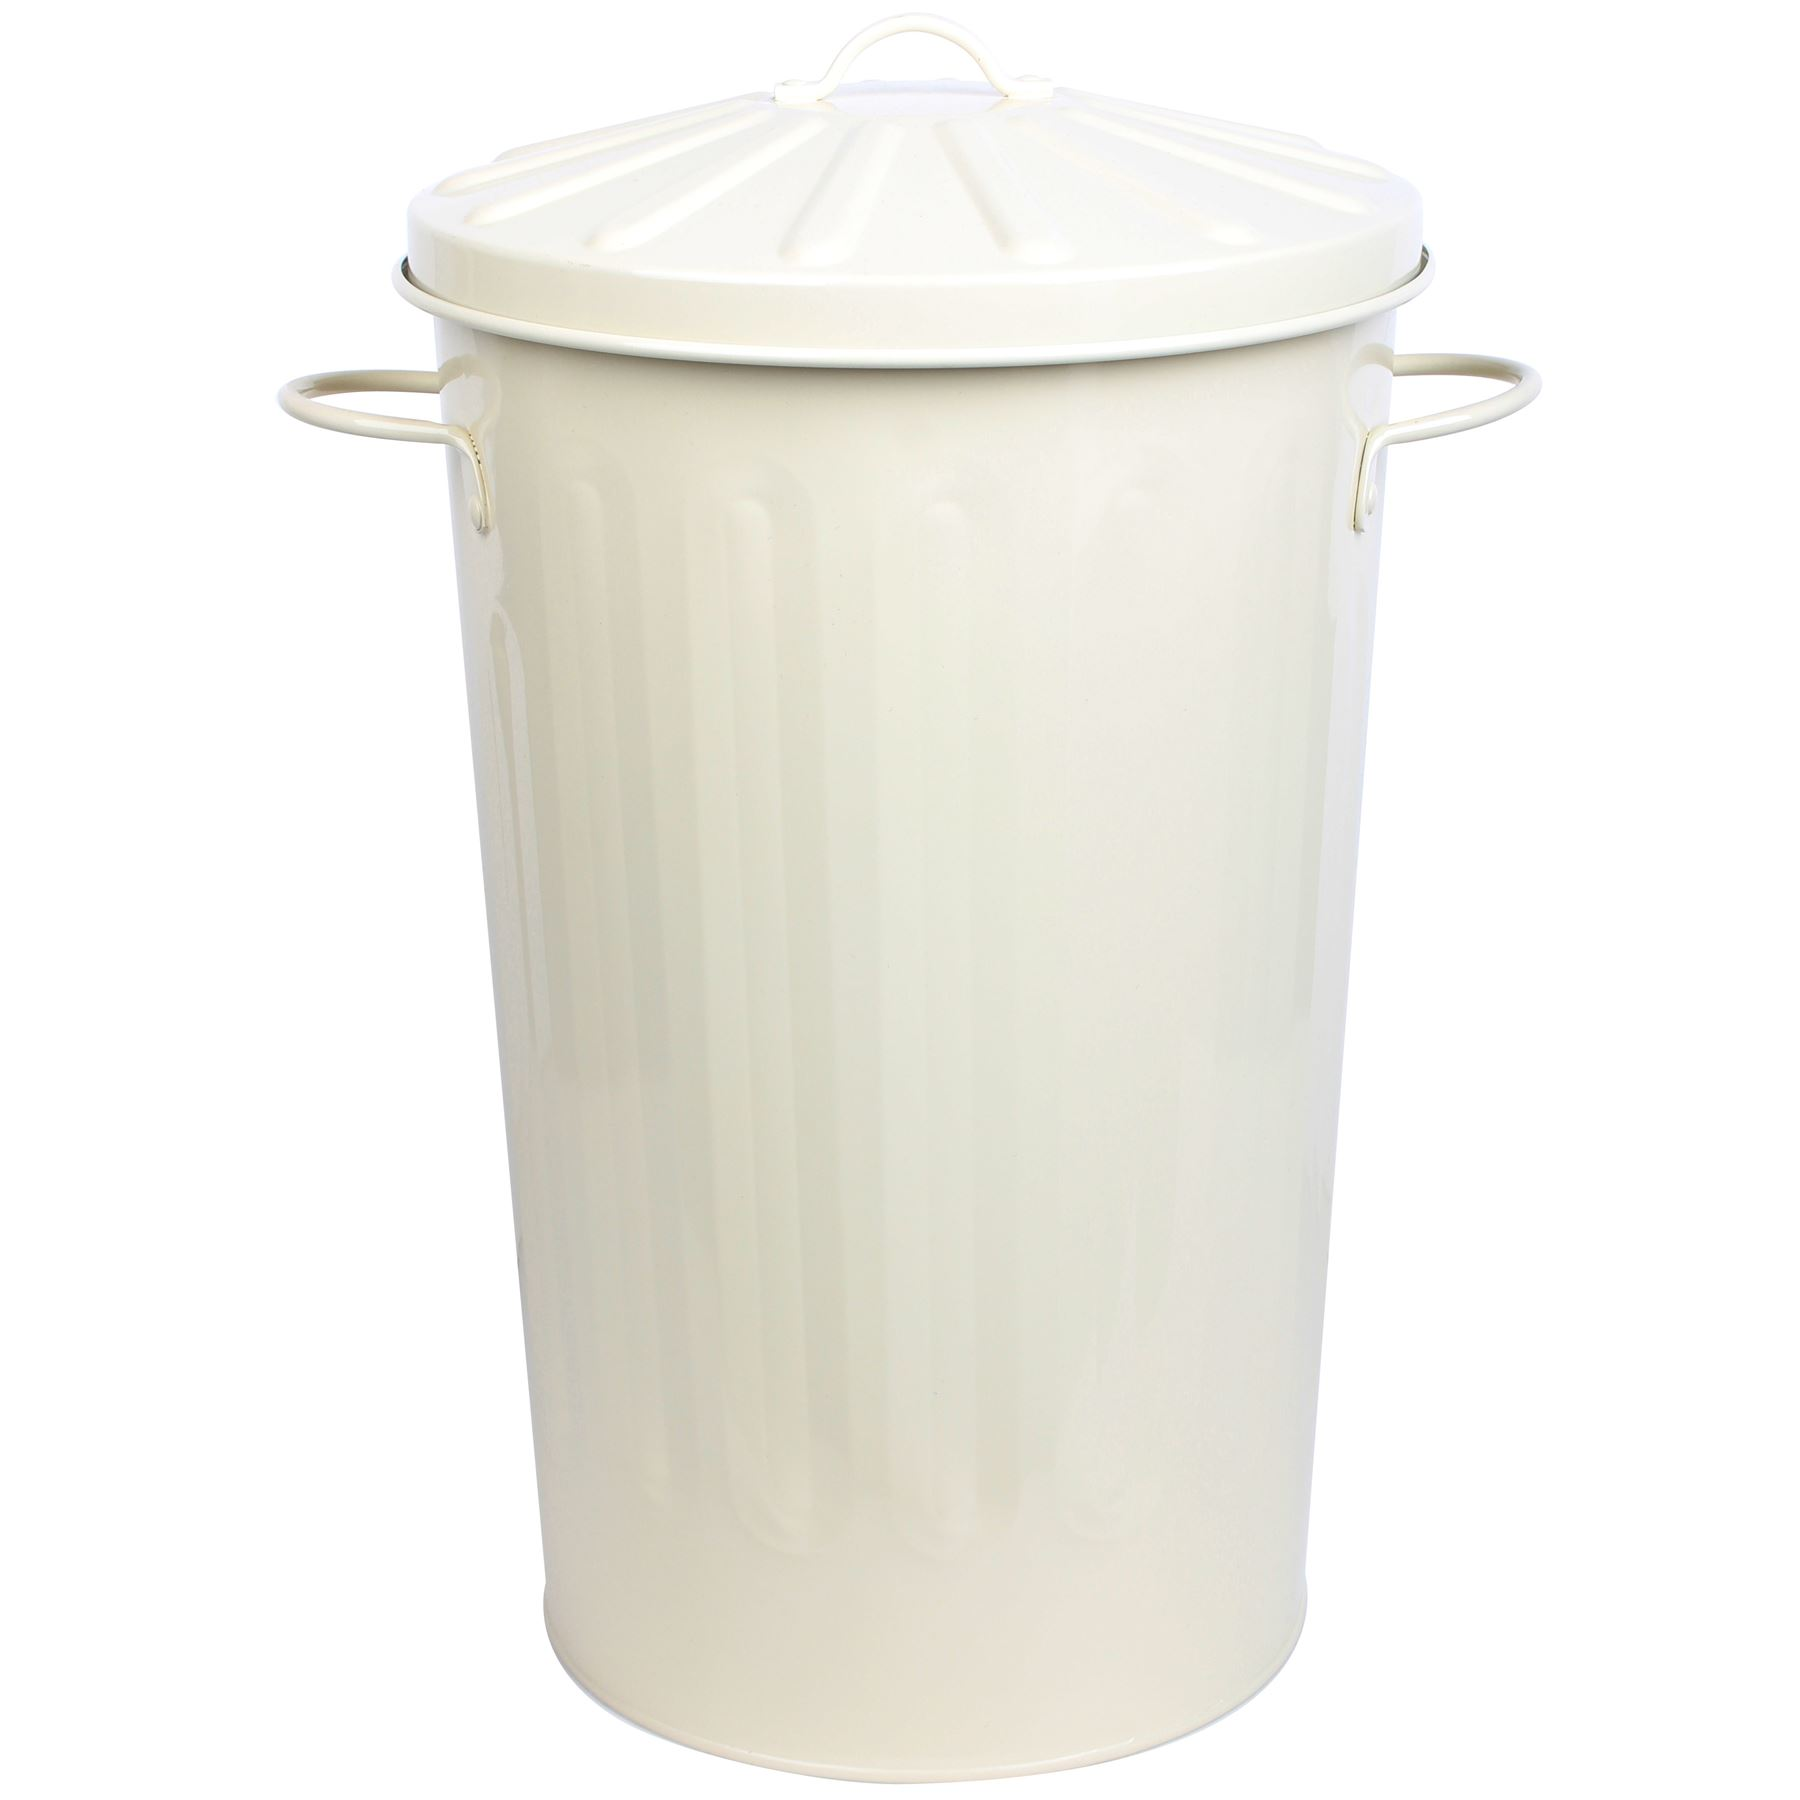 Small Metal Trash Cans With Lids Crazygadget 18l Small Metal Colour Recycle Dustbin With